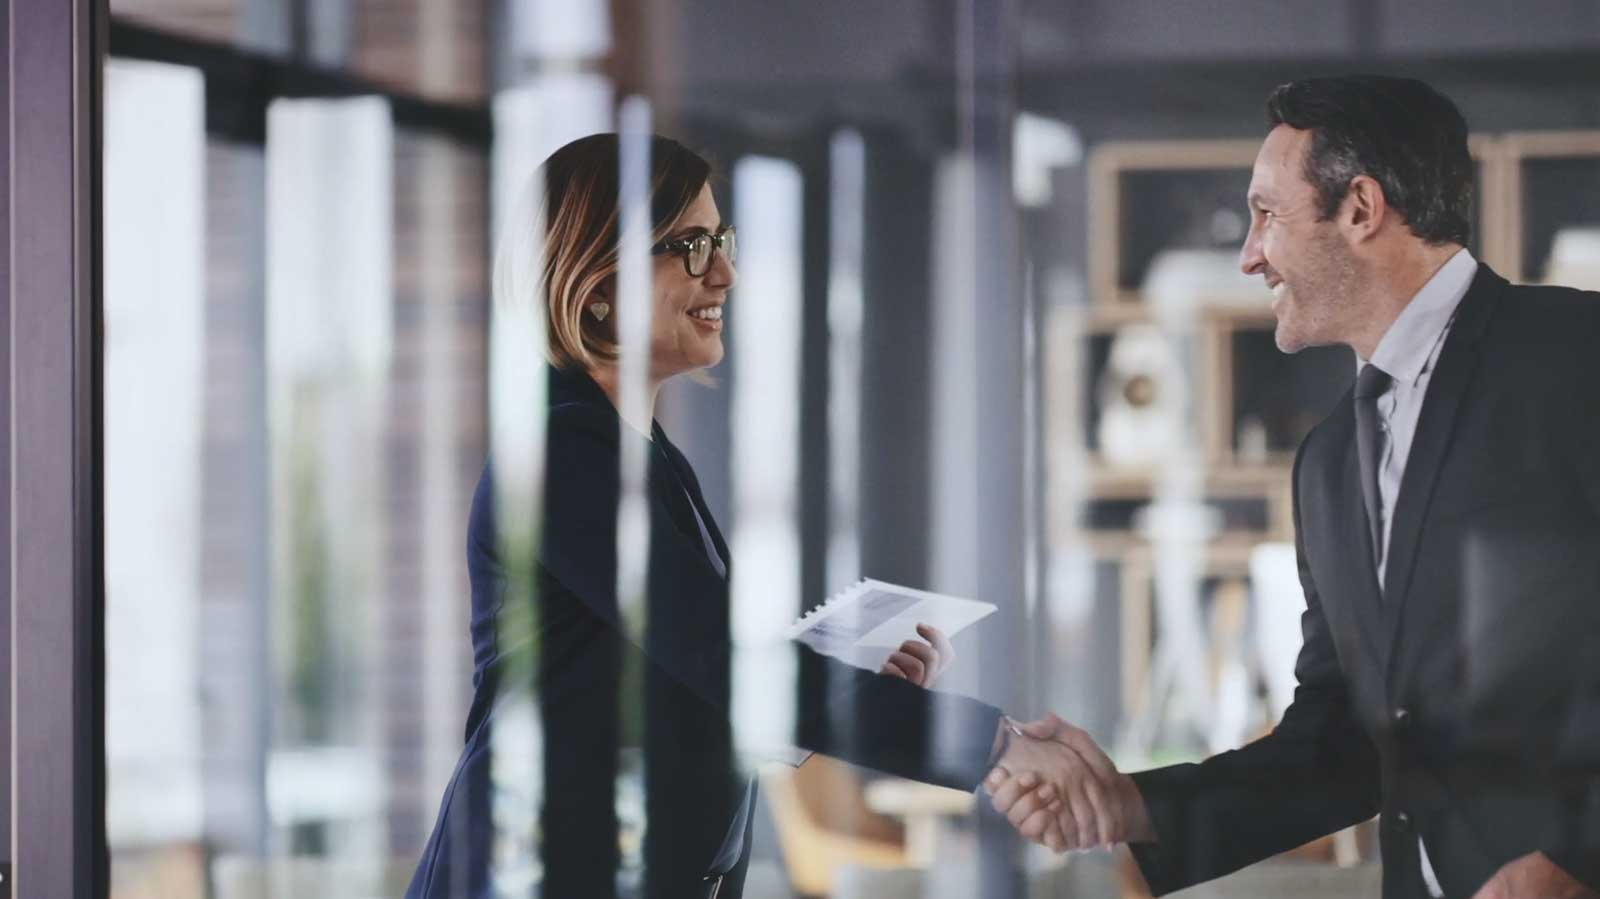 A business woman and business man exchange a handshake in an office.